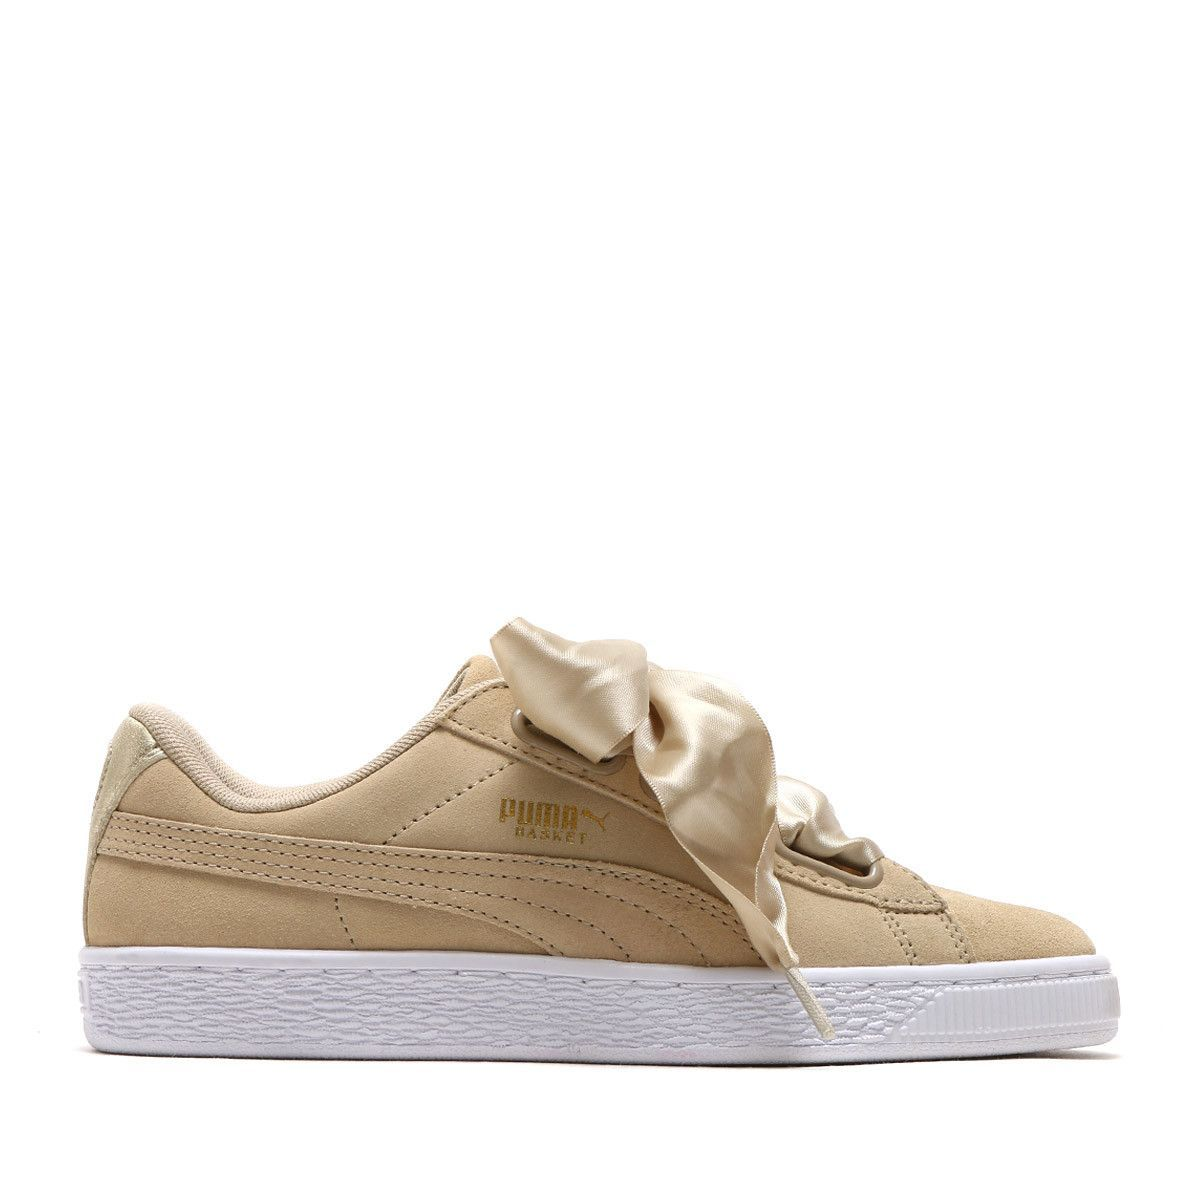 finest selection fca09 44c09 PUMA SUEDE HEART SAFARI WN'S - SAFARI-SAFARI | Products ...